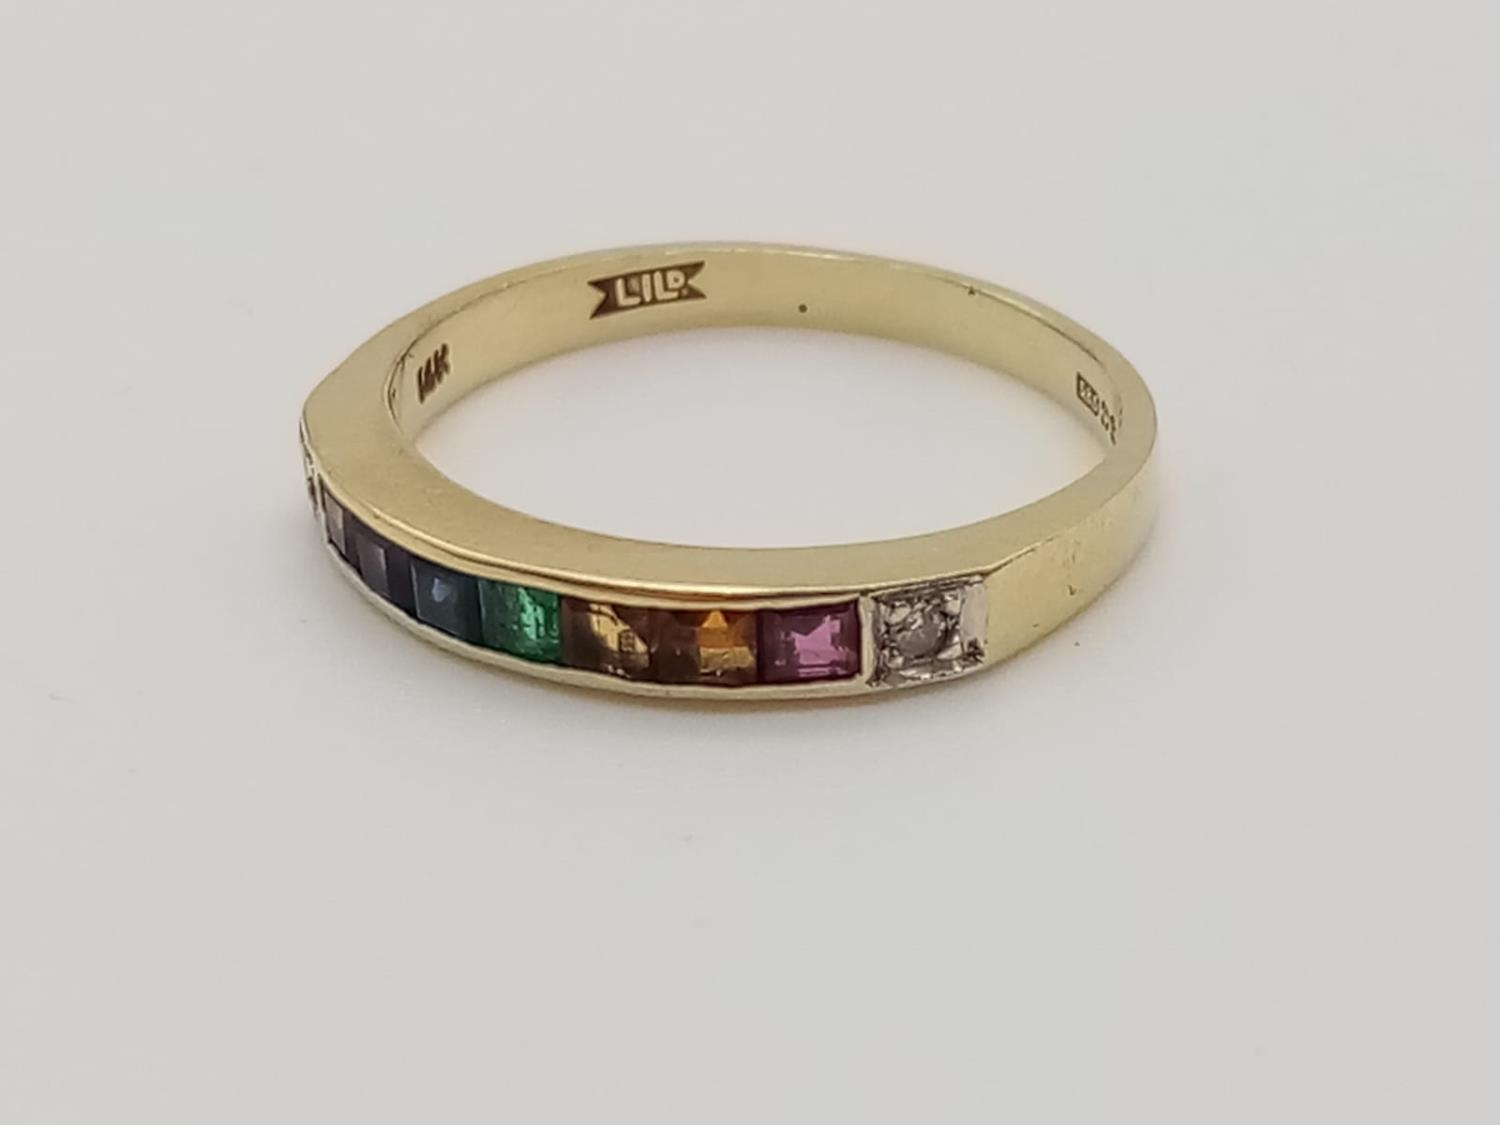 14k yellow gold vintage half eternity ring with multi colour gemstones, weight 1.7g and size K - Image 2 of 7